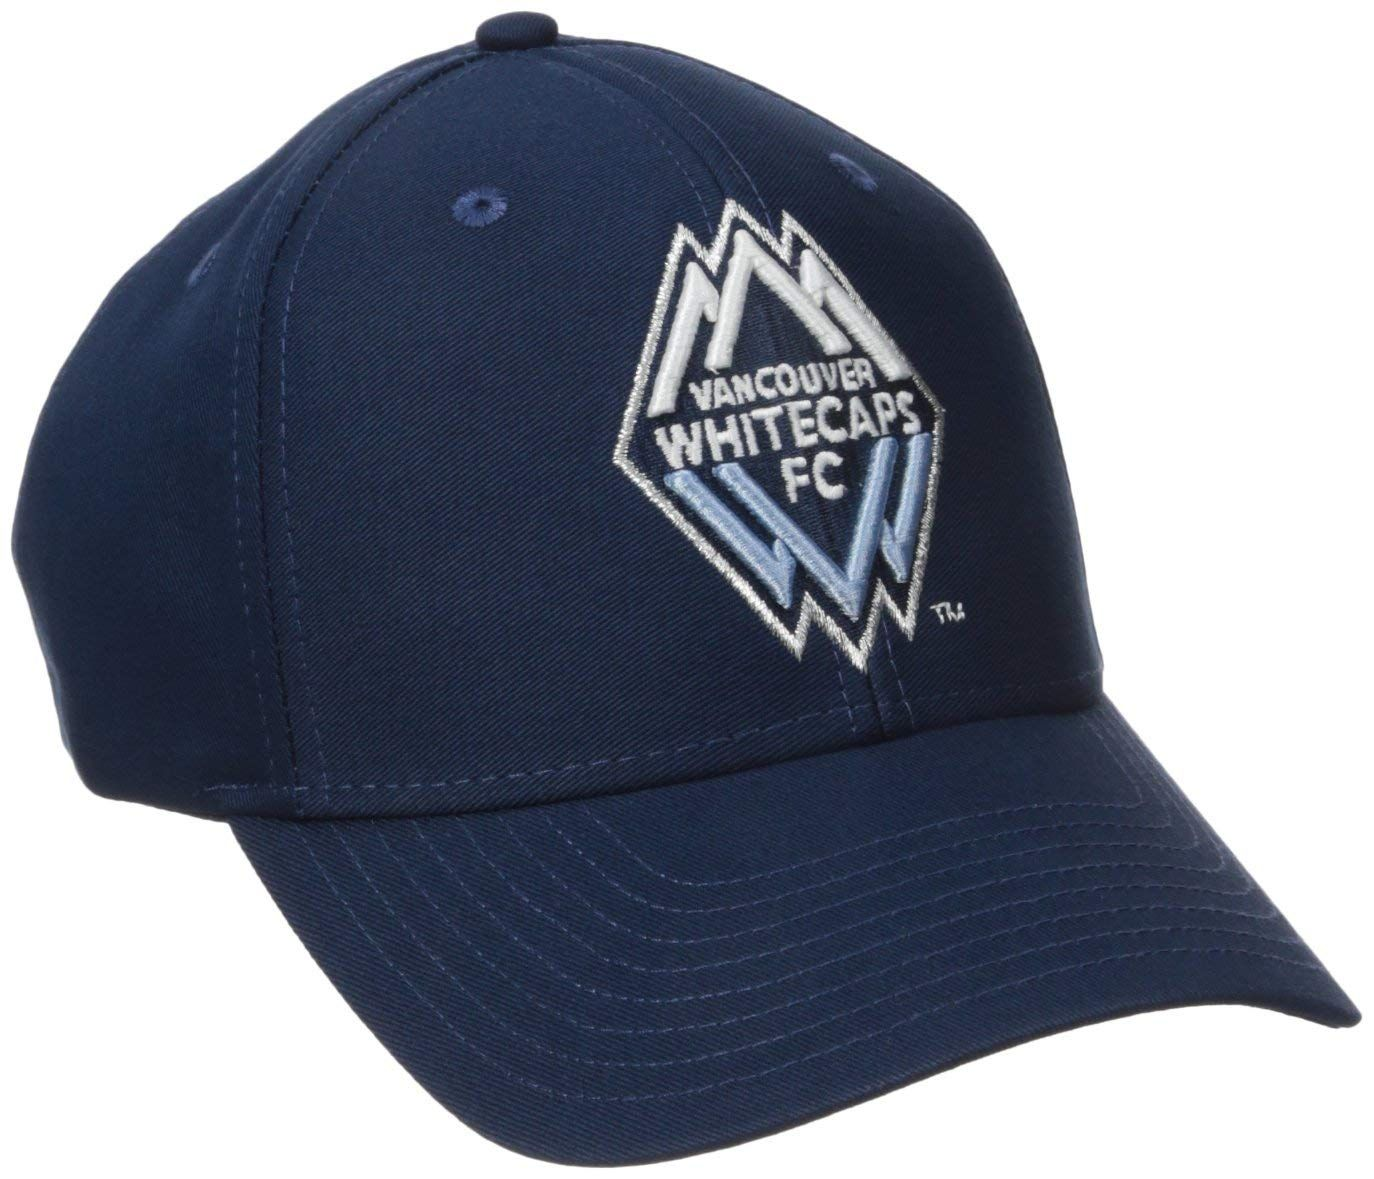 10d5387e75c MLS Vancouver Whitecaps Men s Basic Structured Adjustable Cap ...